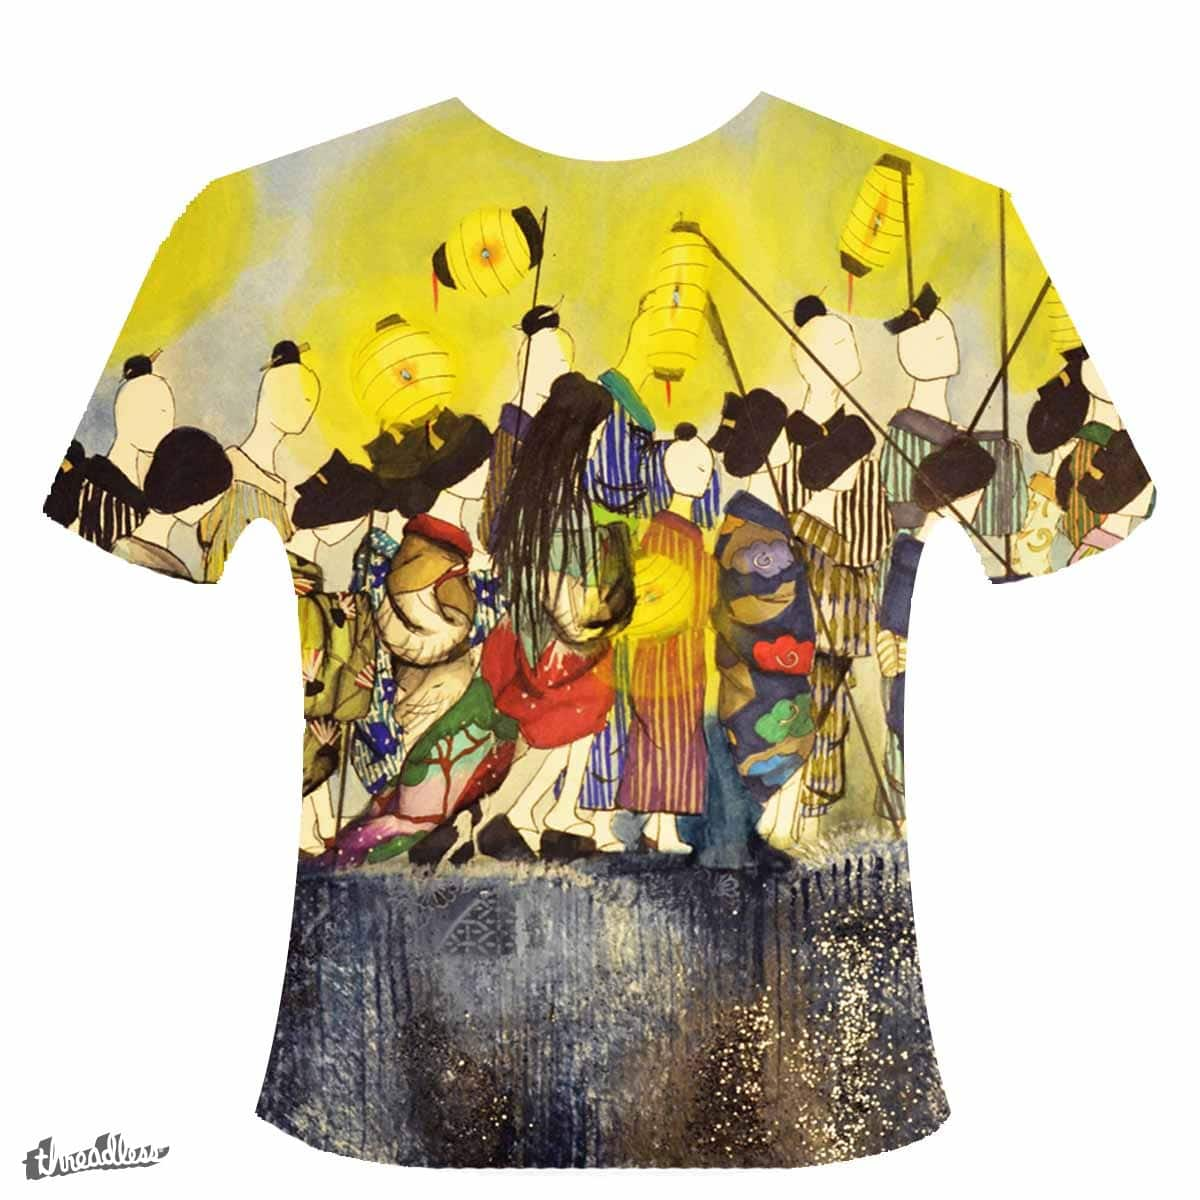 Japanese Procession by Daphnepiper on Threadless